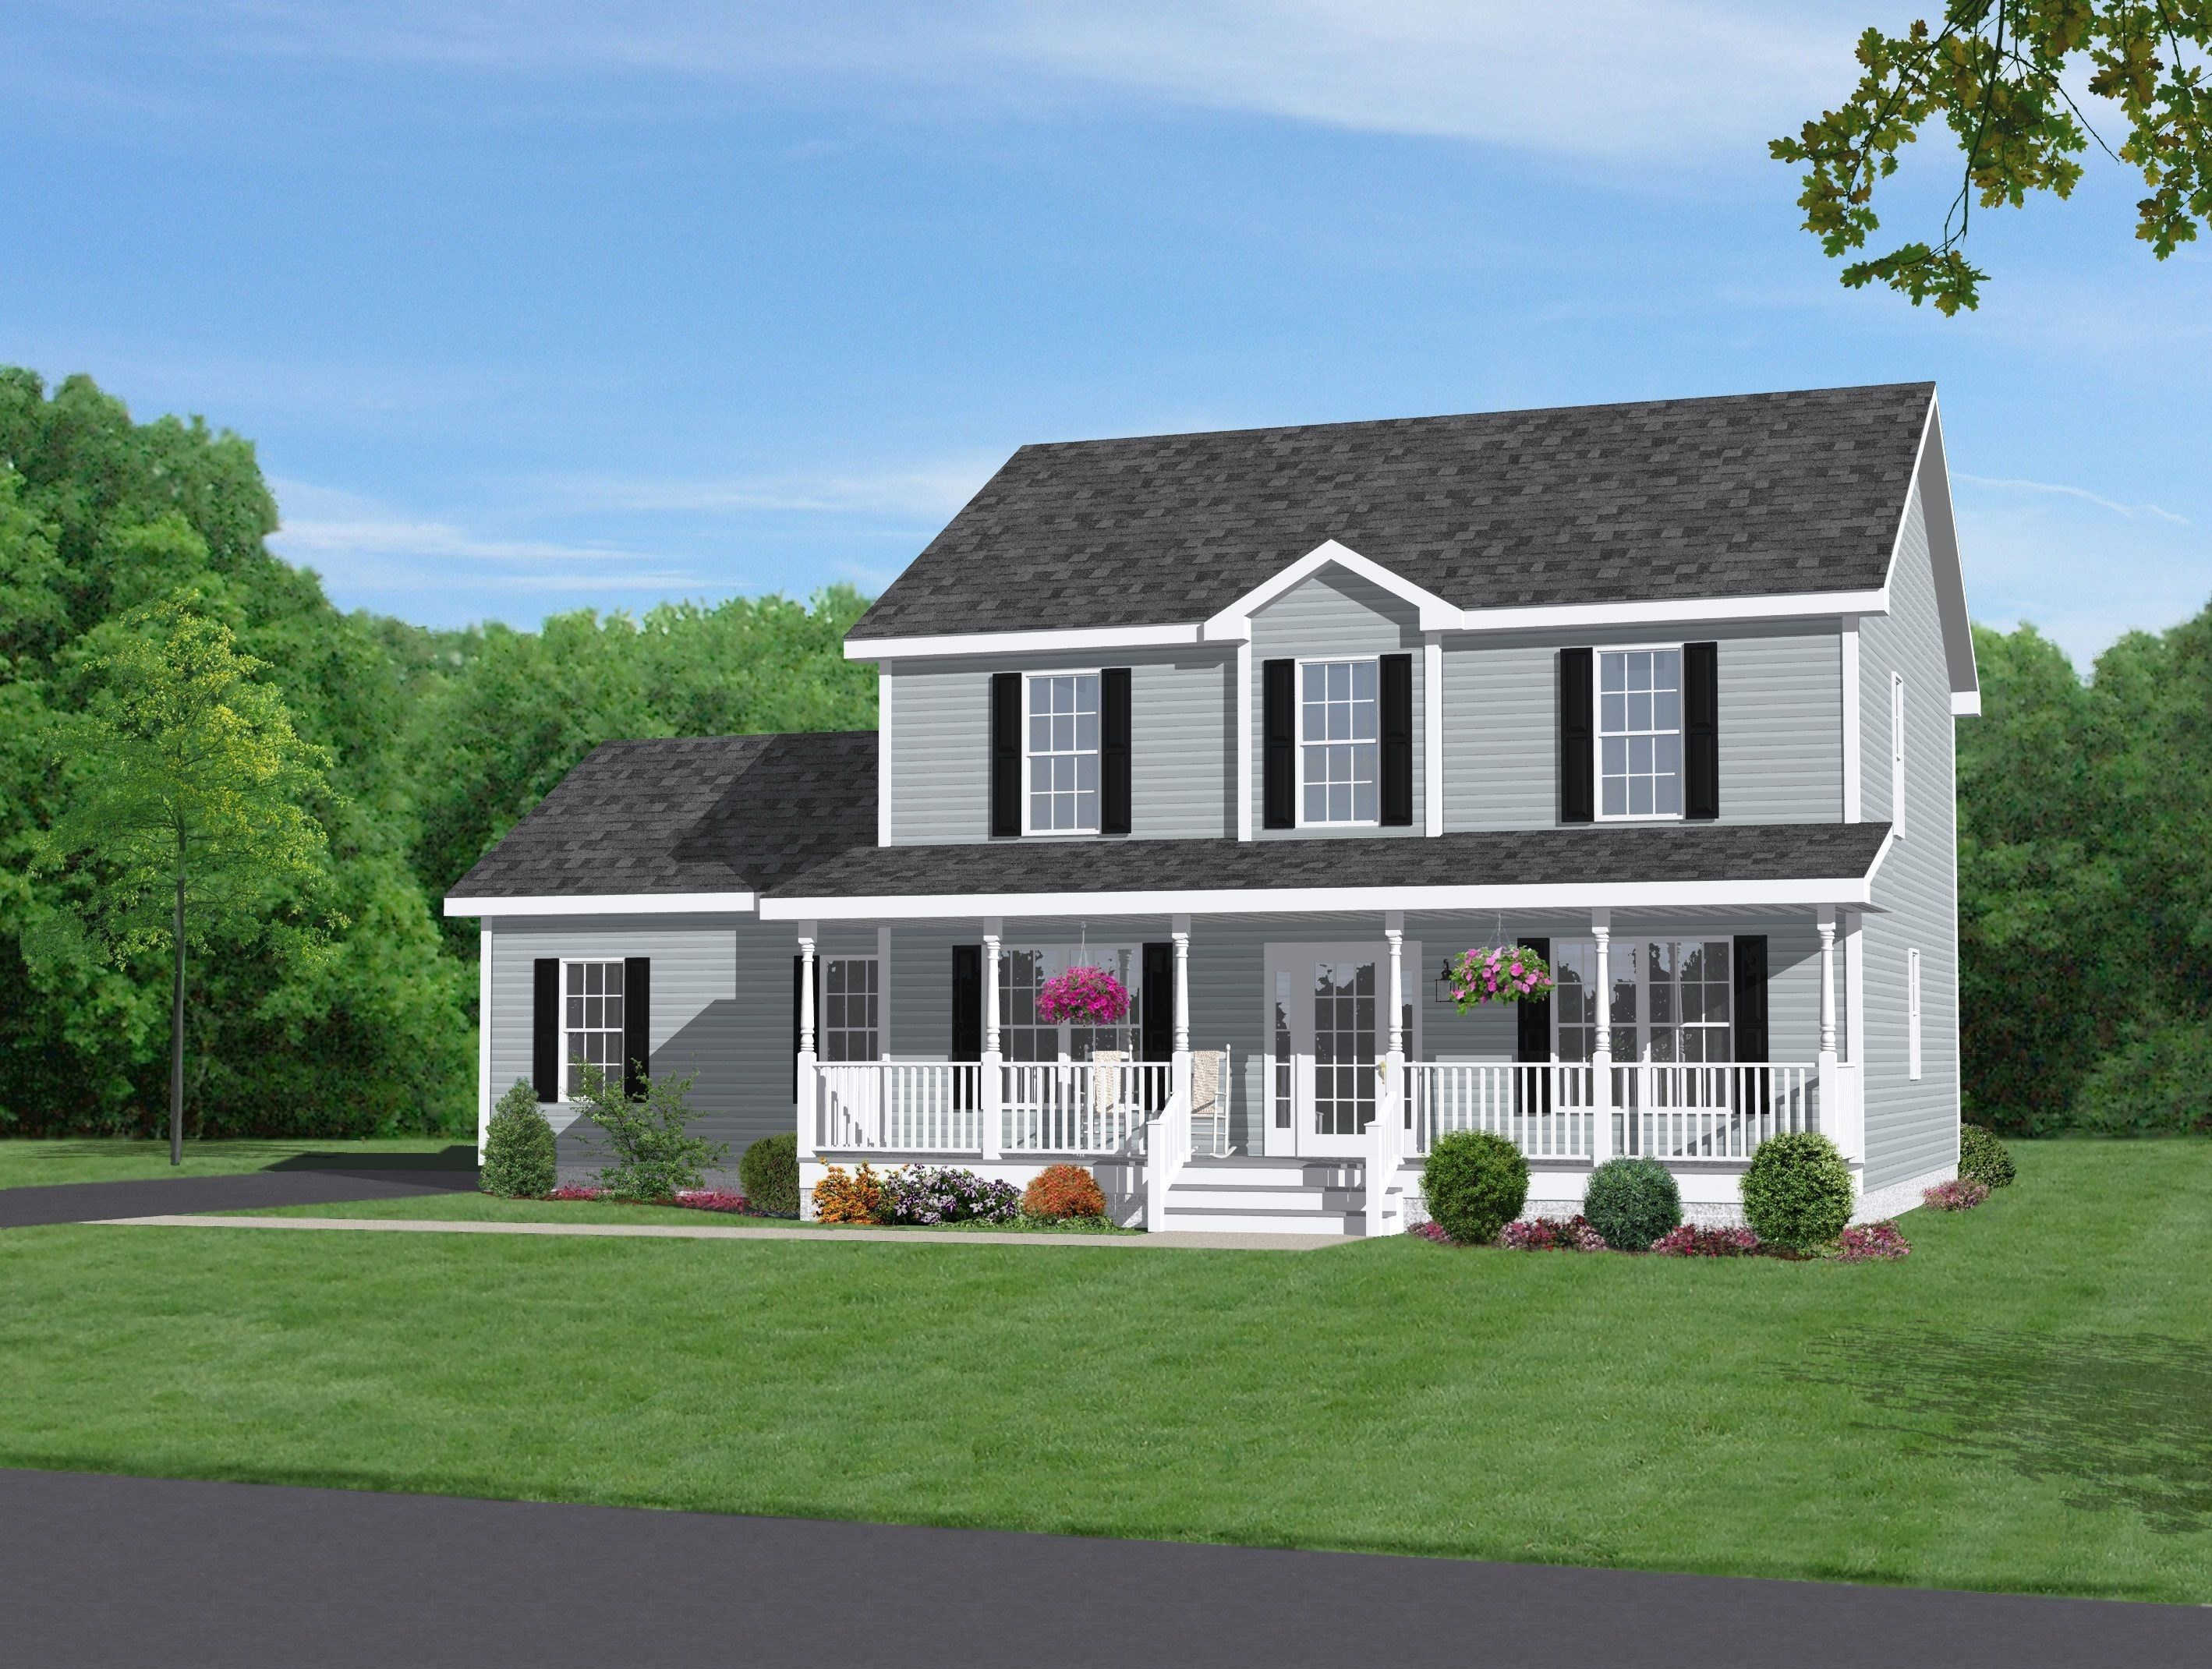 Beautiful front porch designs two story houses bw19k2